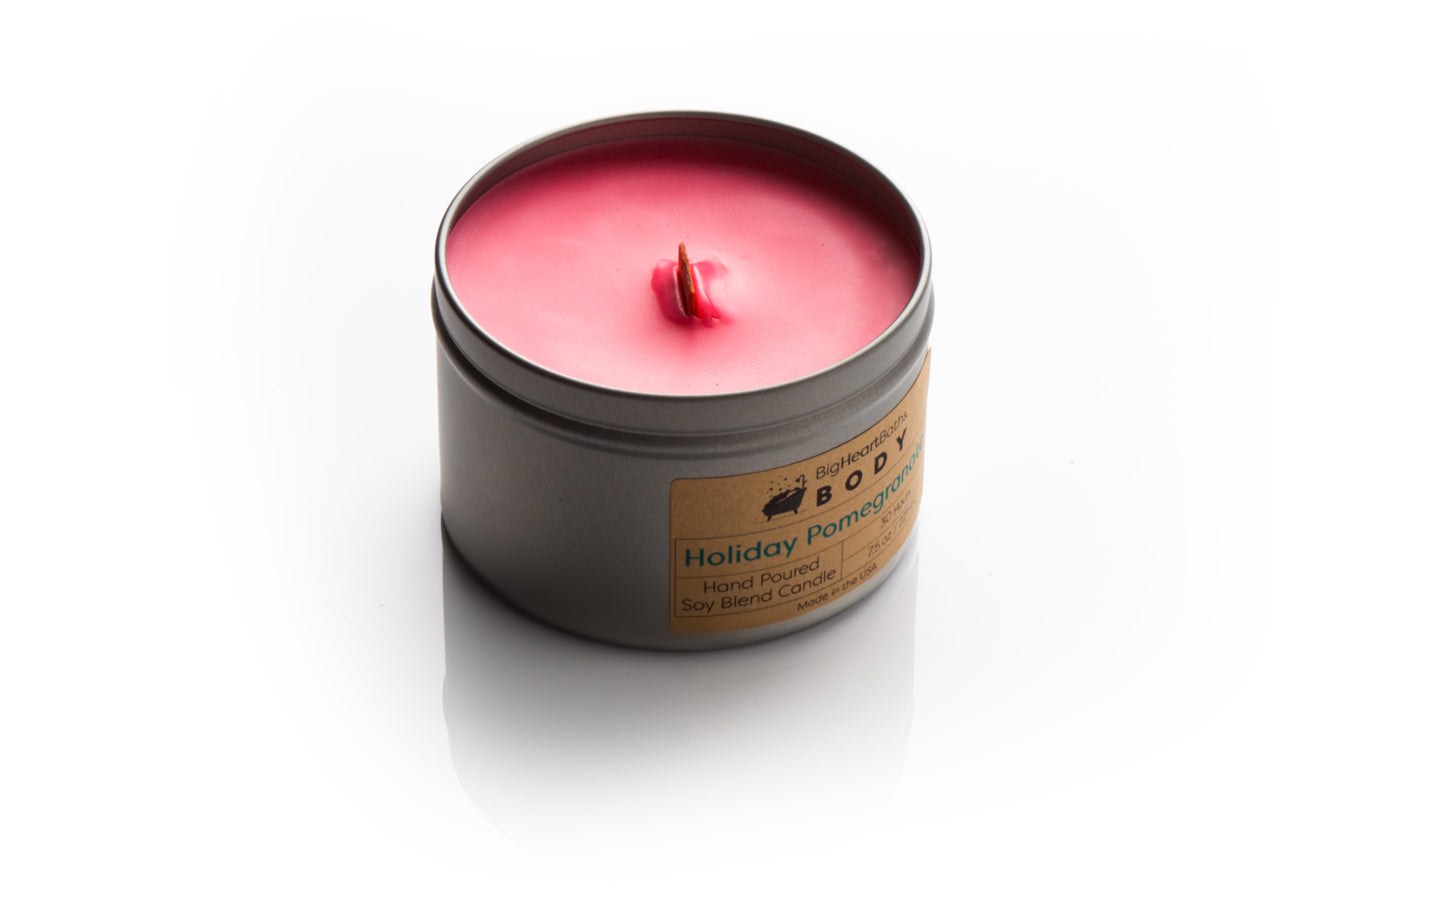 candle, wood wick candle, wooden wick candle, wood wick, scented candle, pomegranate candle, holiday pomegranate candle, soy candle, clean burn candle